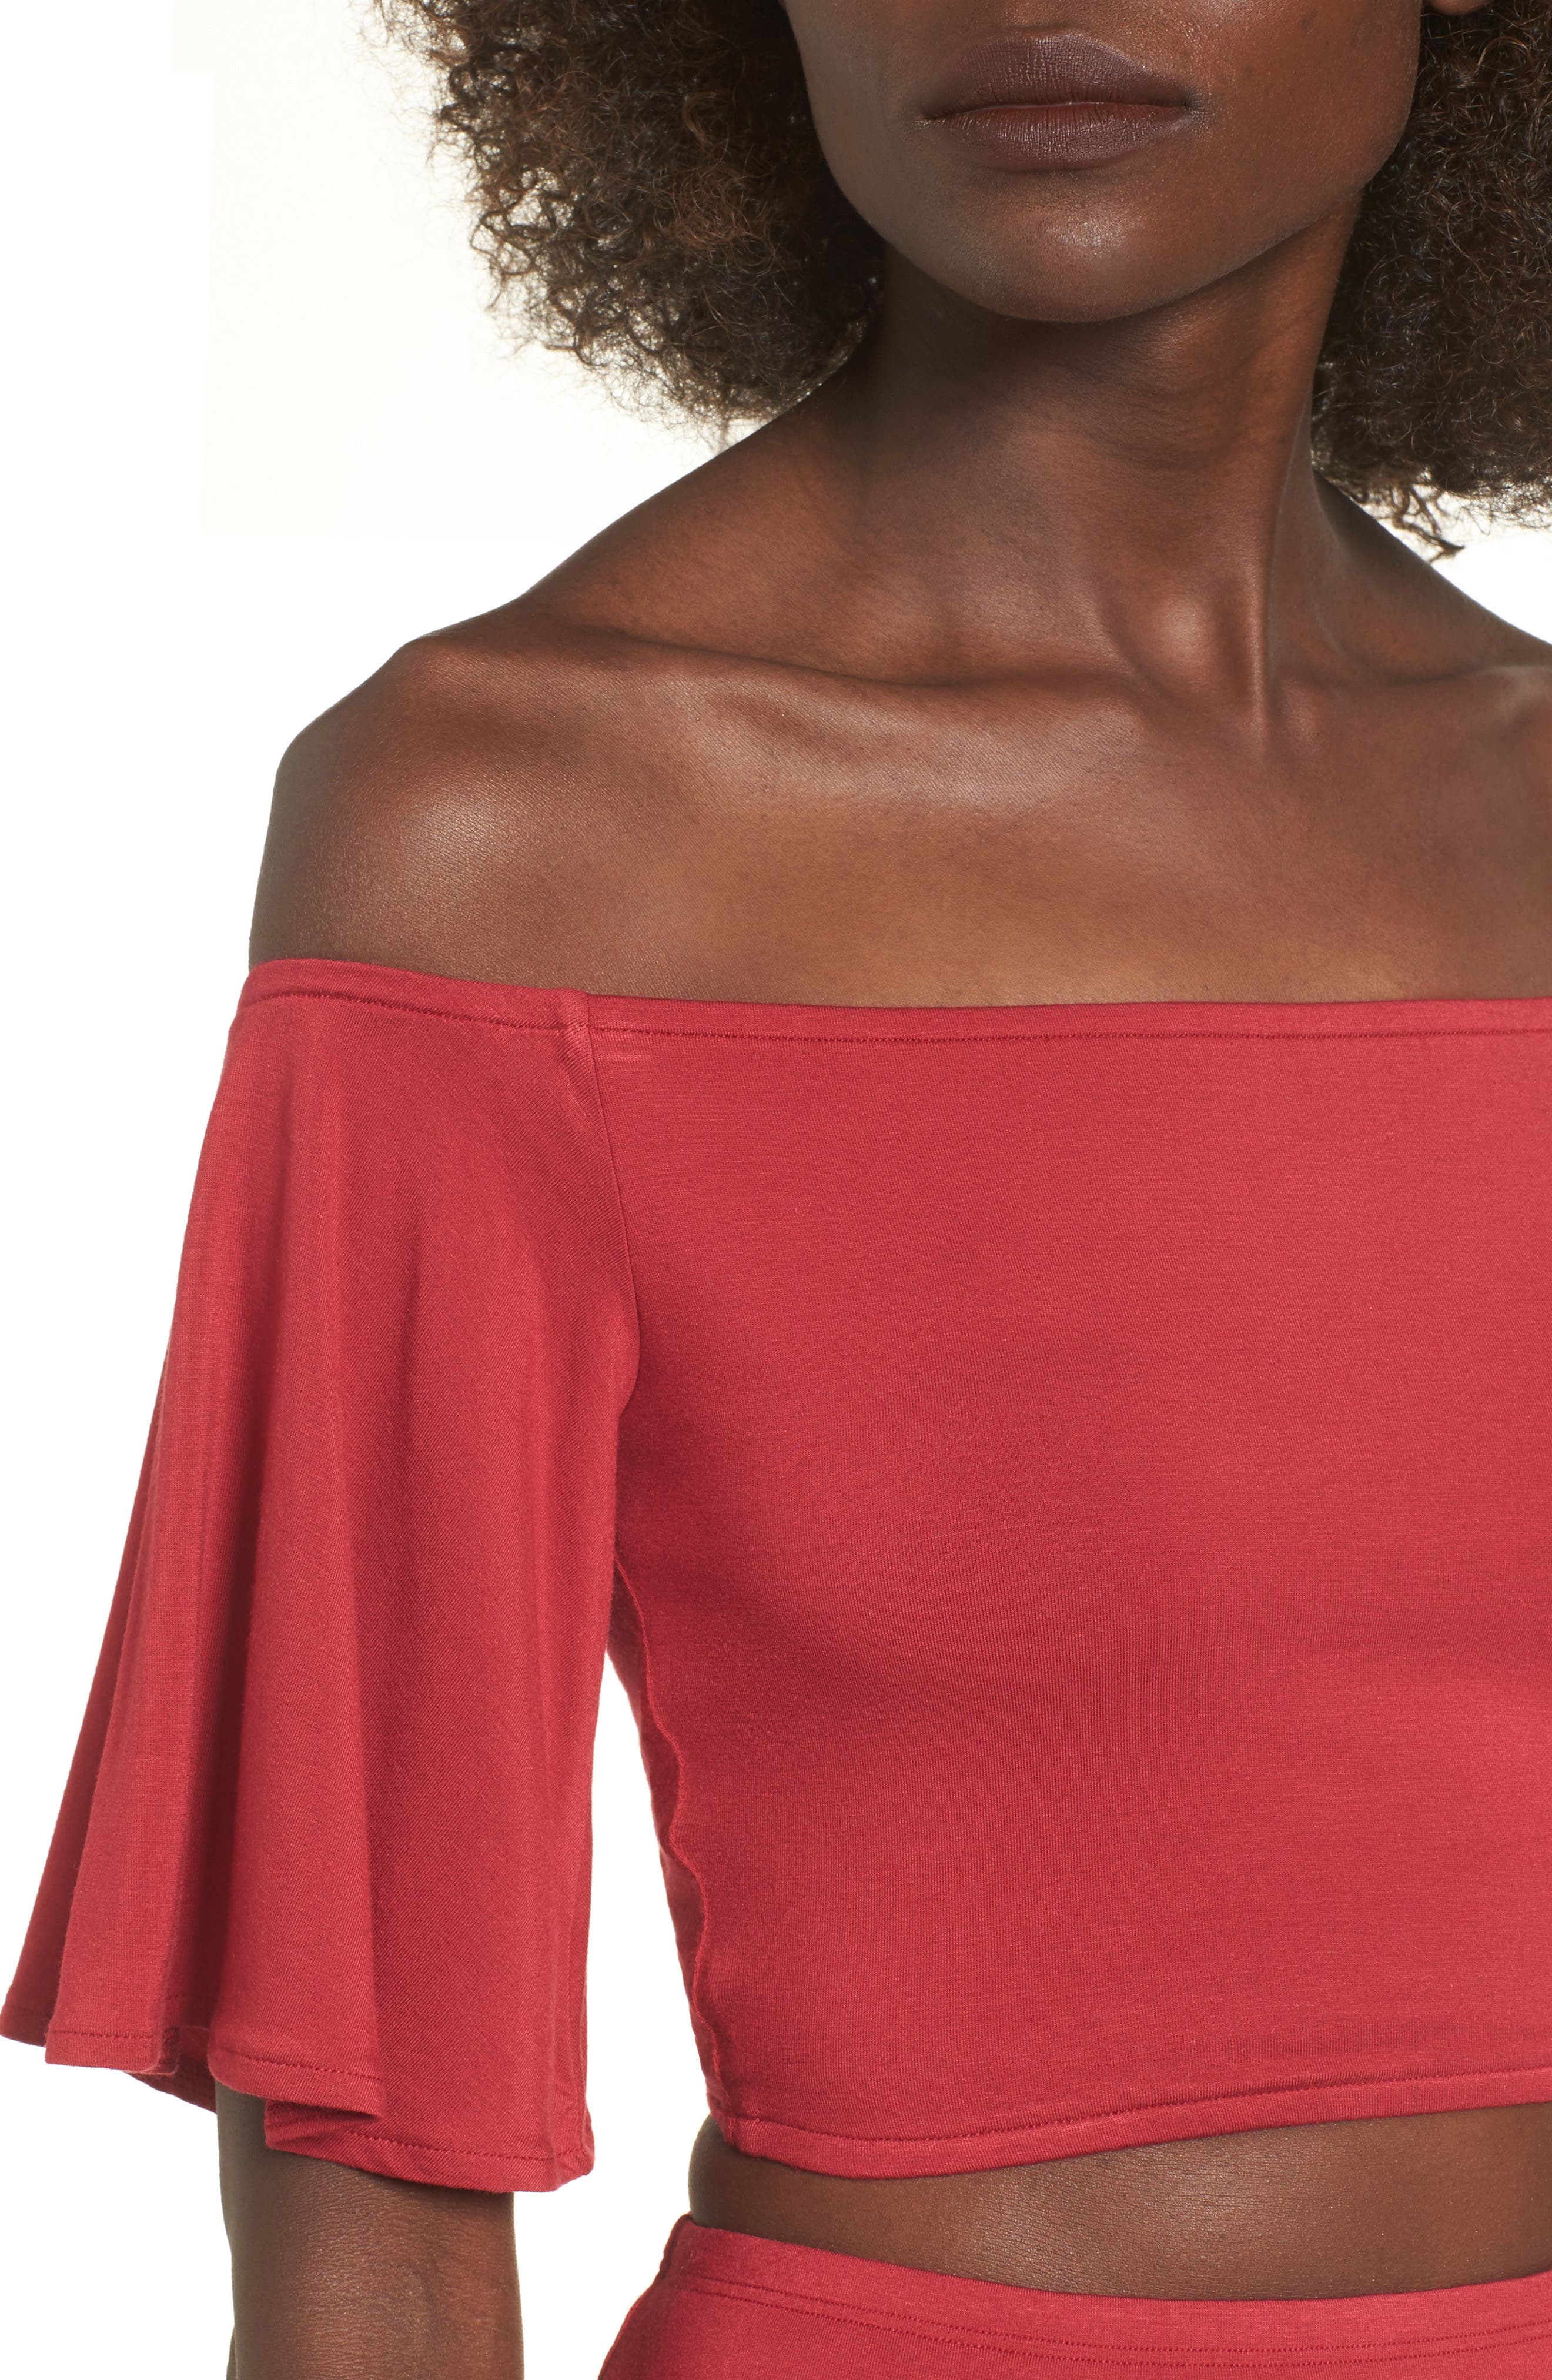 Hills Crop Top,                             Alternate thumbnail 4, color,                             Red